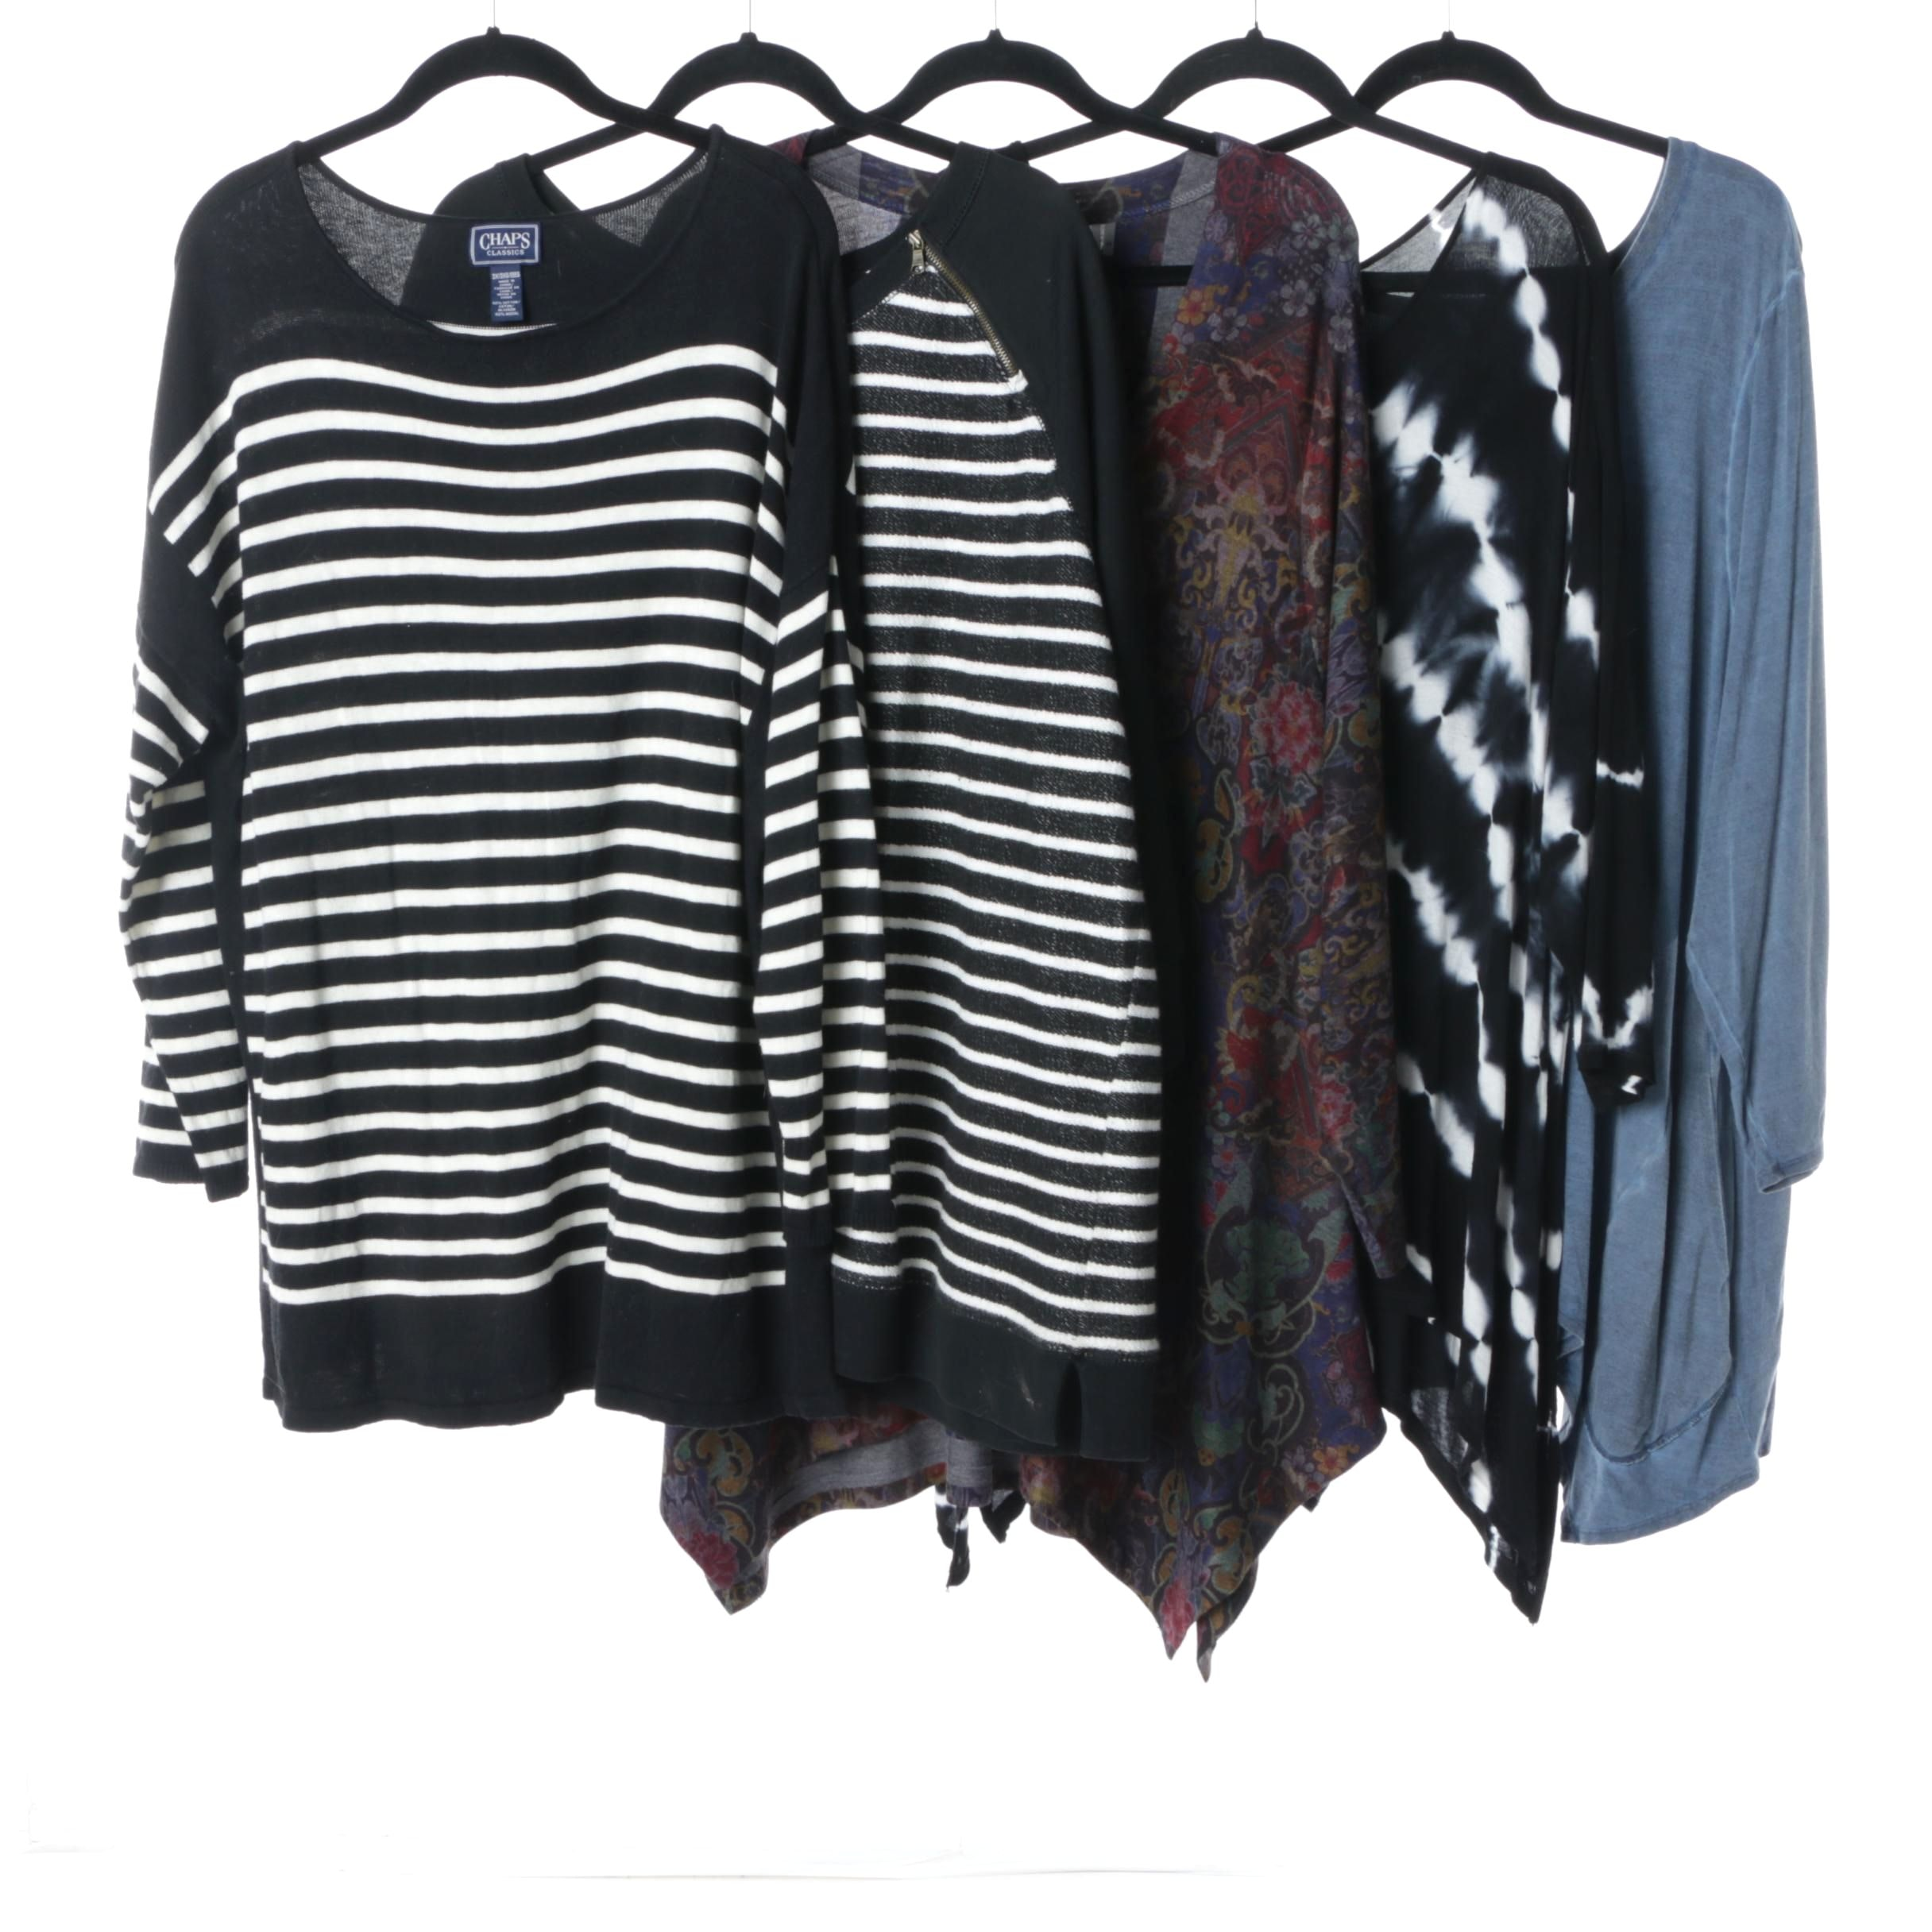 Women's Tops Including INC and Lauren Jeans Co. in Sizes 2X and 3X